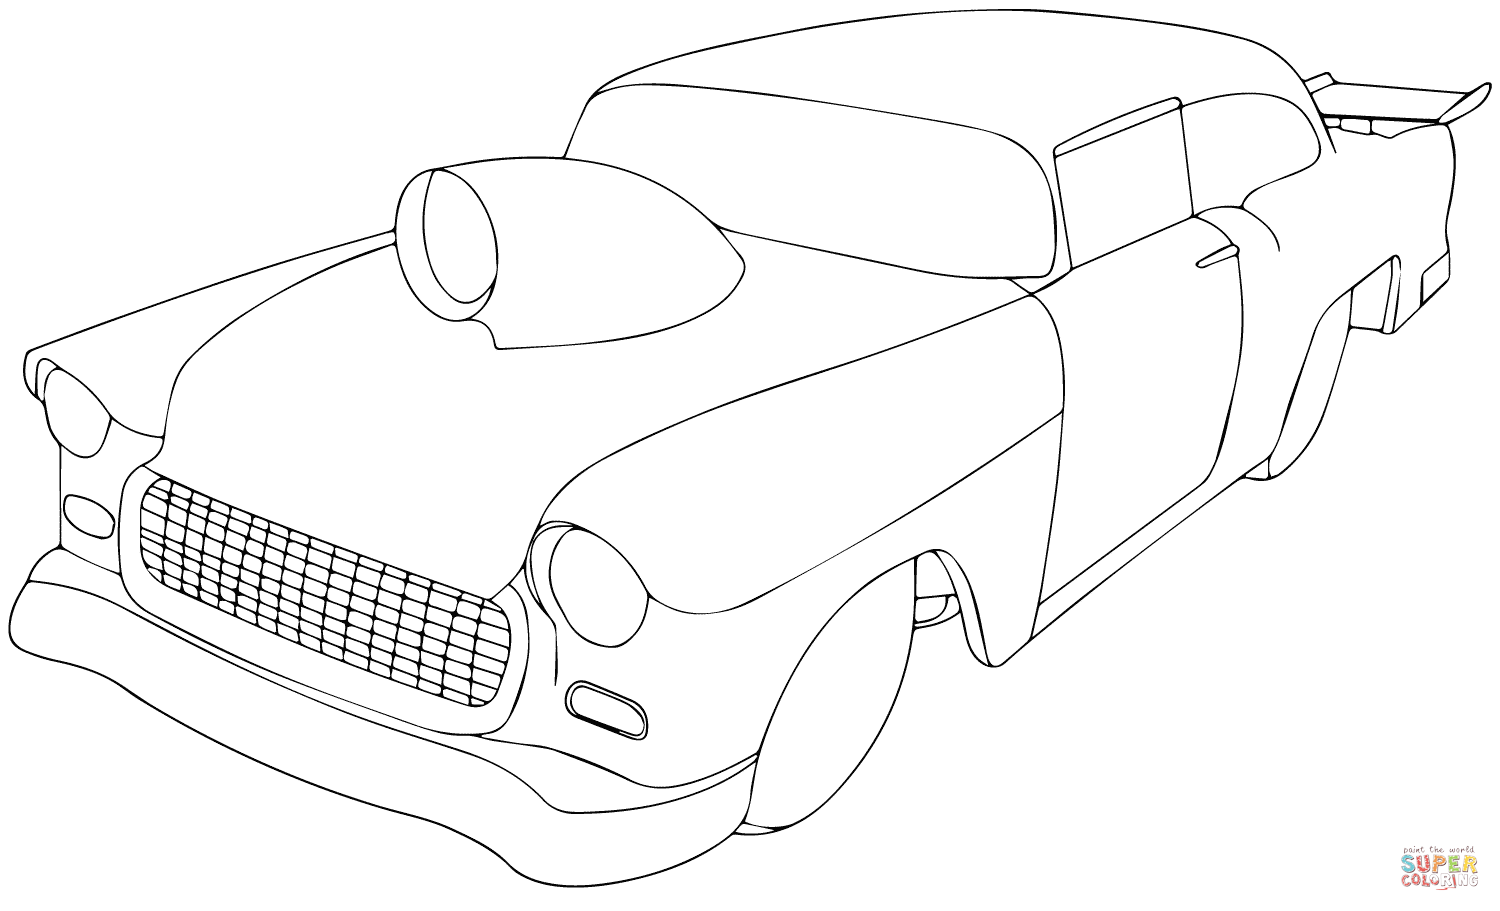 1955 chevy car coloring pages